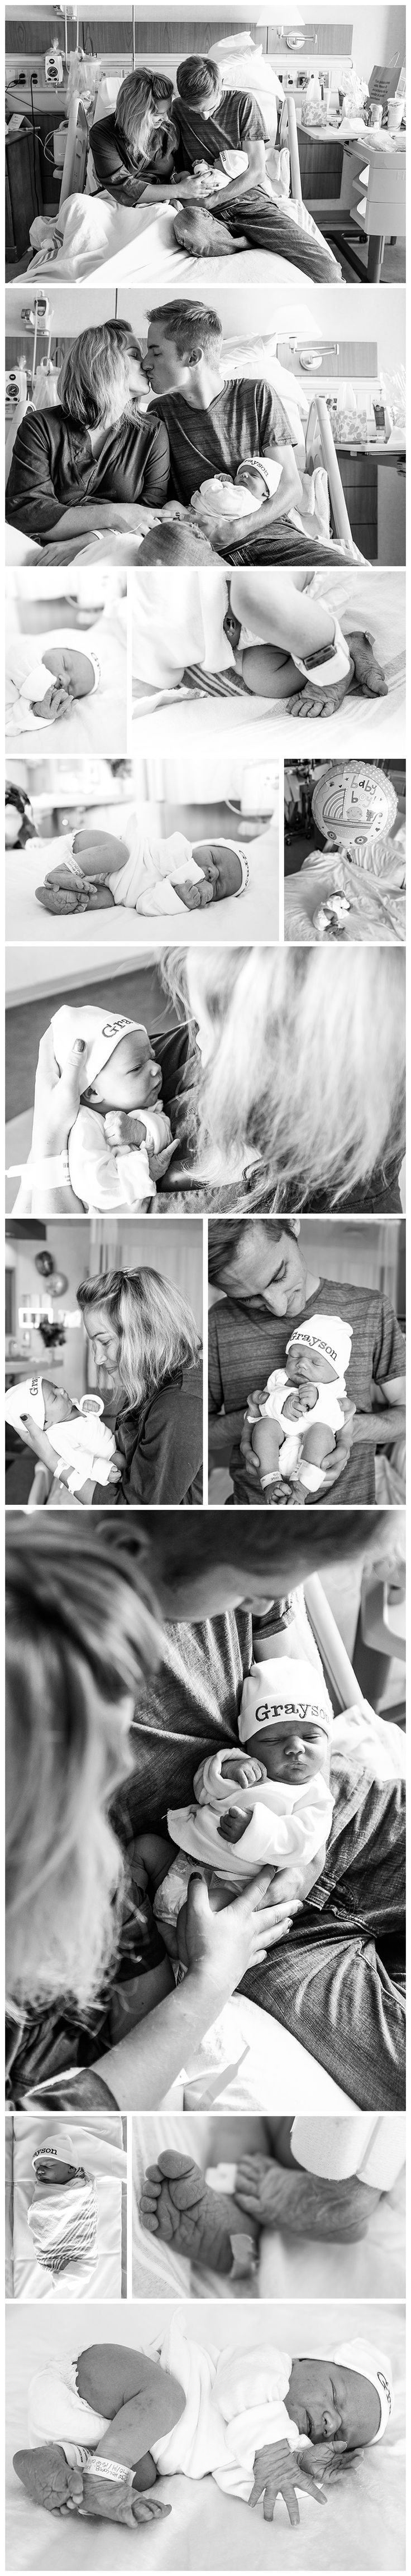 baby photography - Visual Poetry by Meghan - Colorado birth photographer - baby boy   I am so excited to Welcome Baby Grayson into the world! My best friend gave birth to her sweet baby boy on Wednesday morning and they are both doing great!!